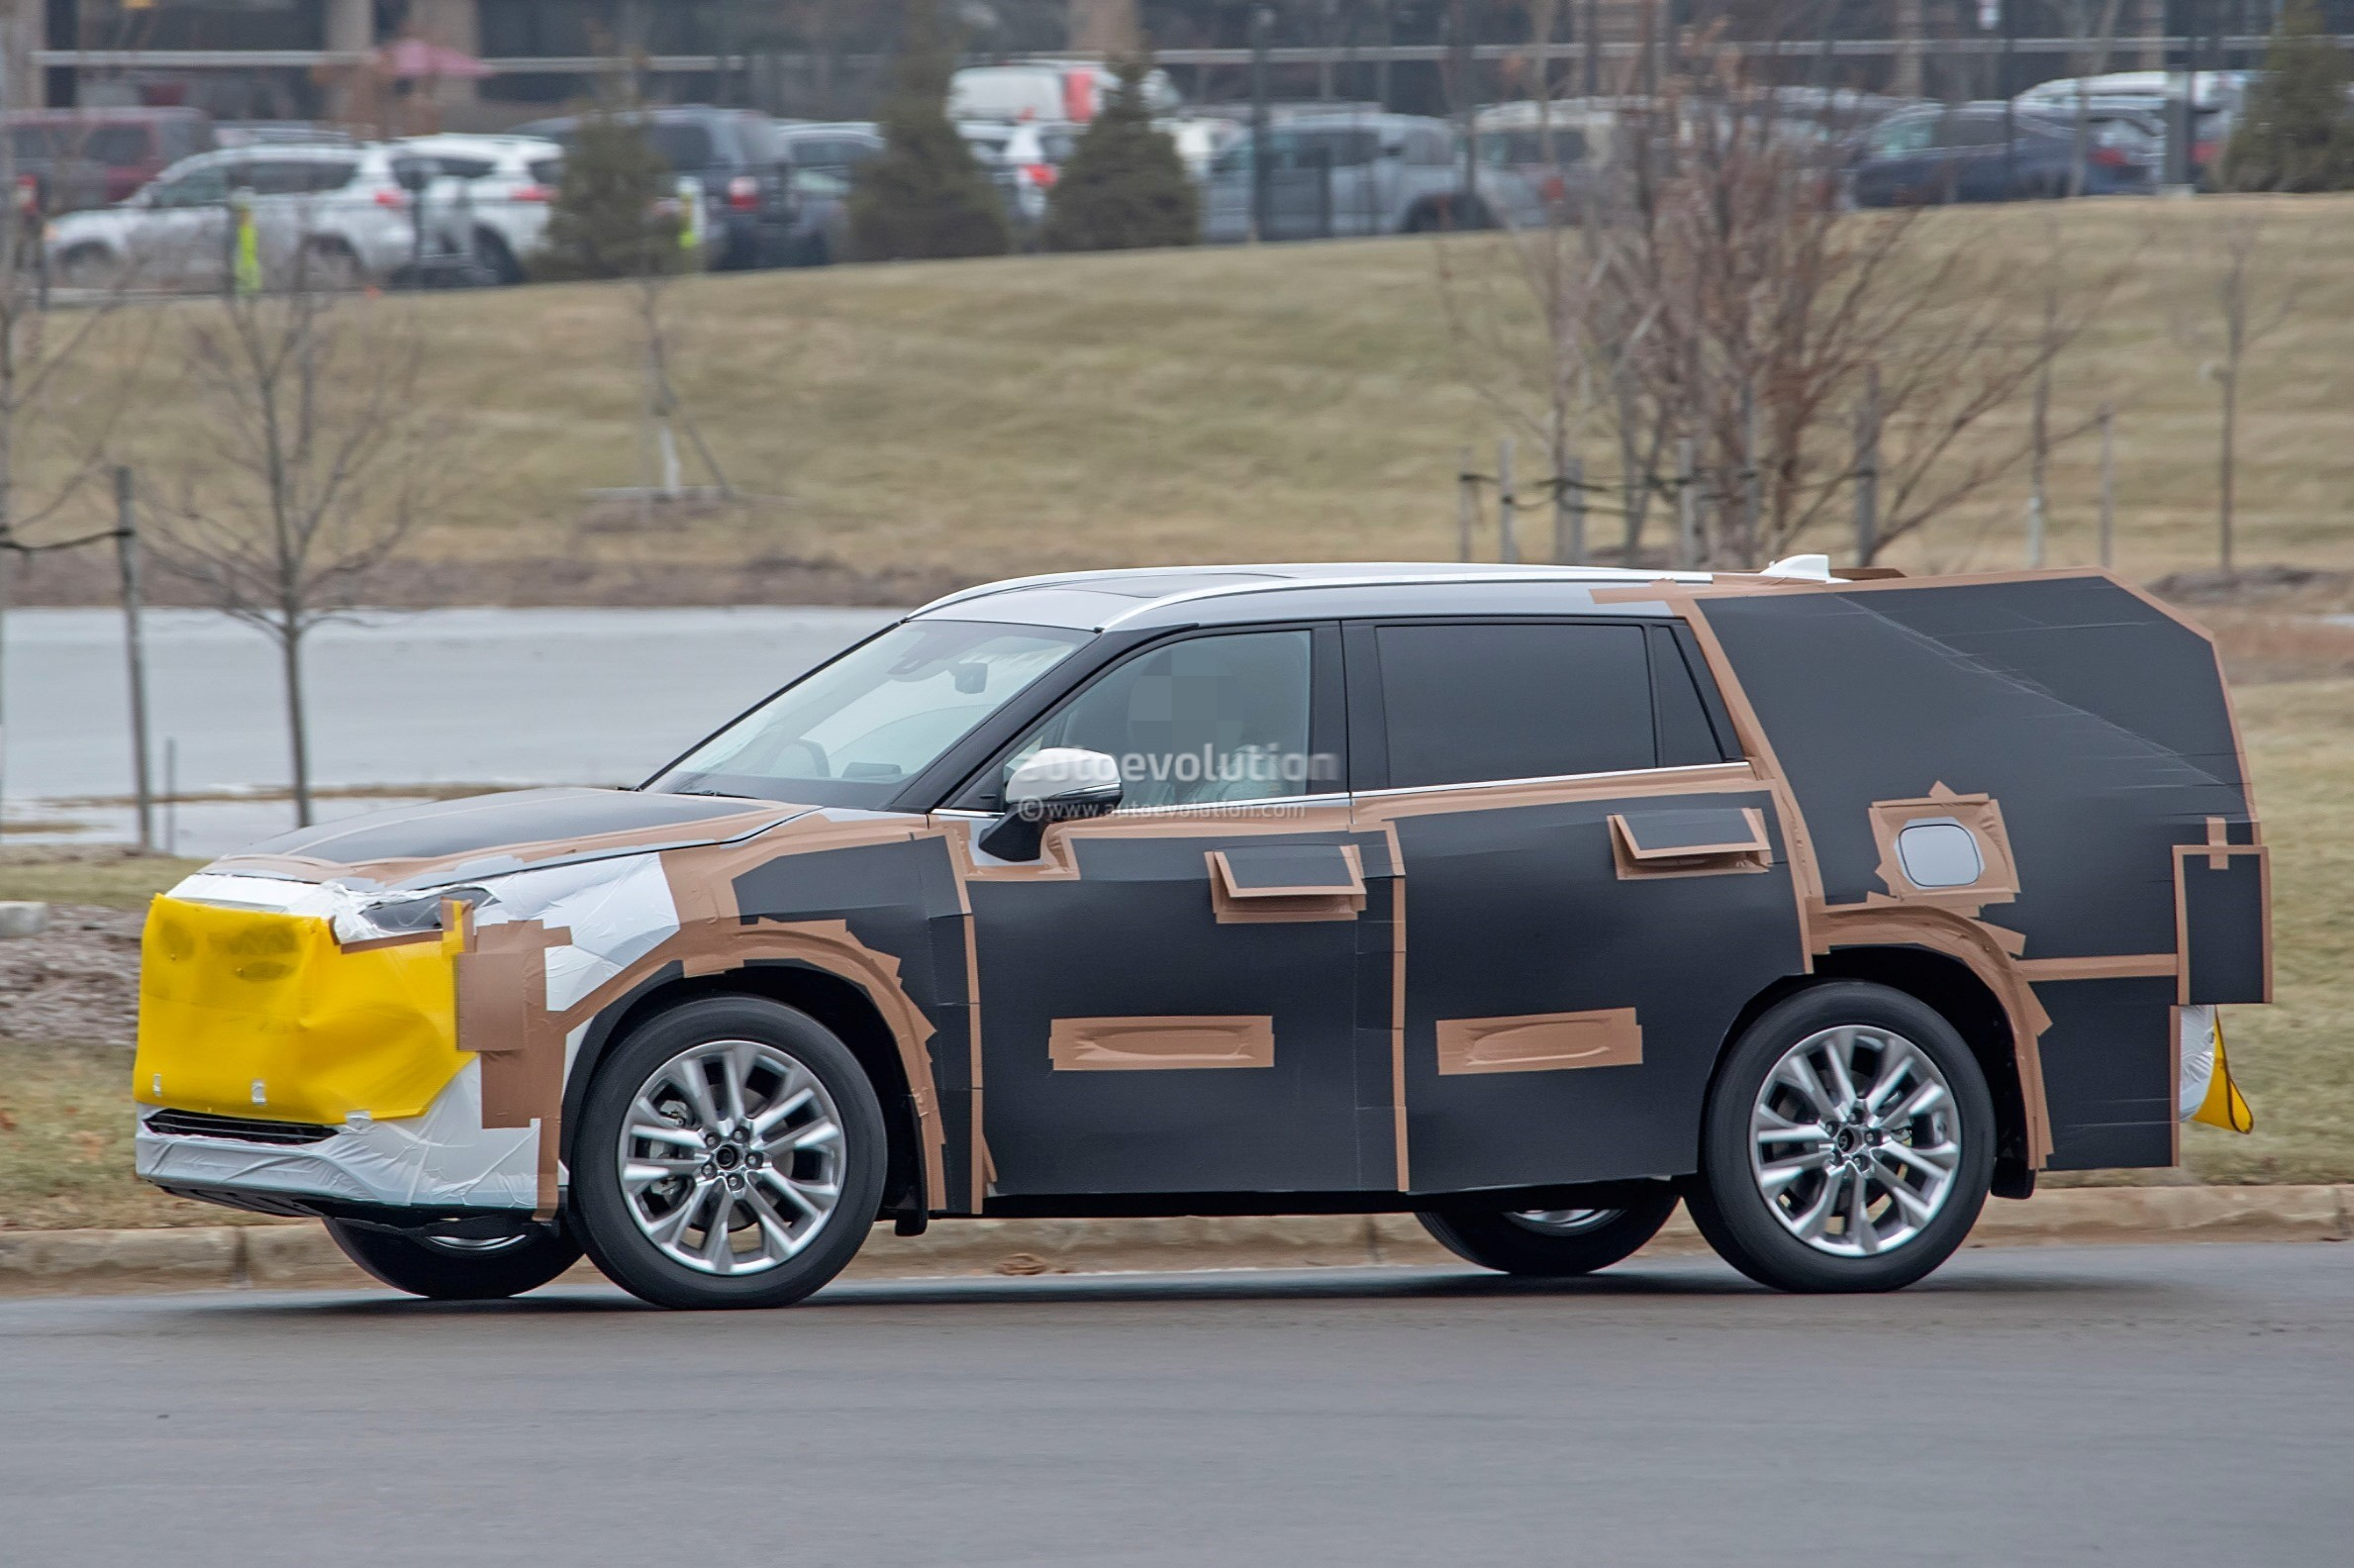 Toyota Highlander Spied Features Rav Inspired Front Grille on Toyota Camry Black